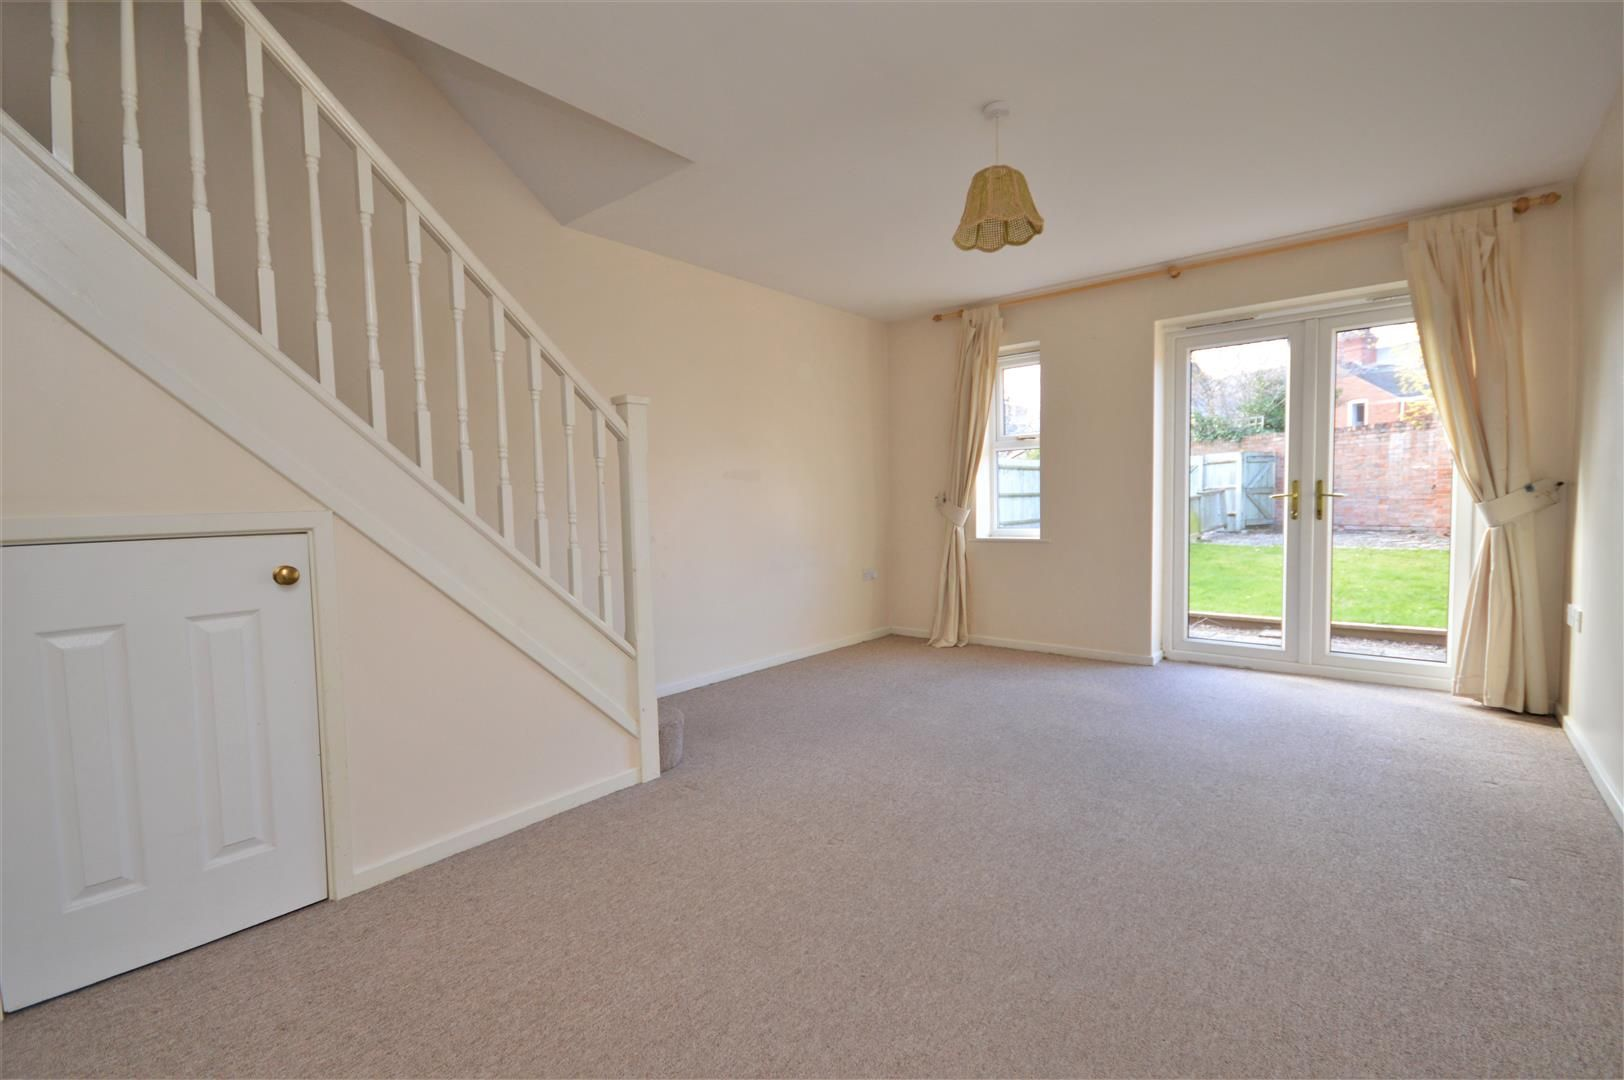 2 bed end-of-terrace for sale 3